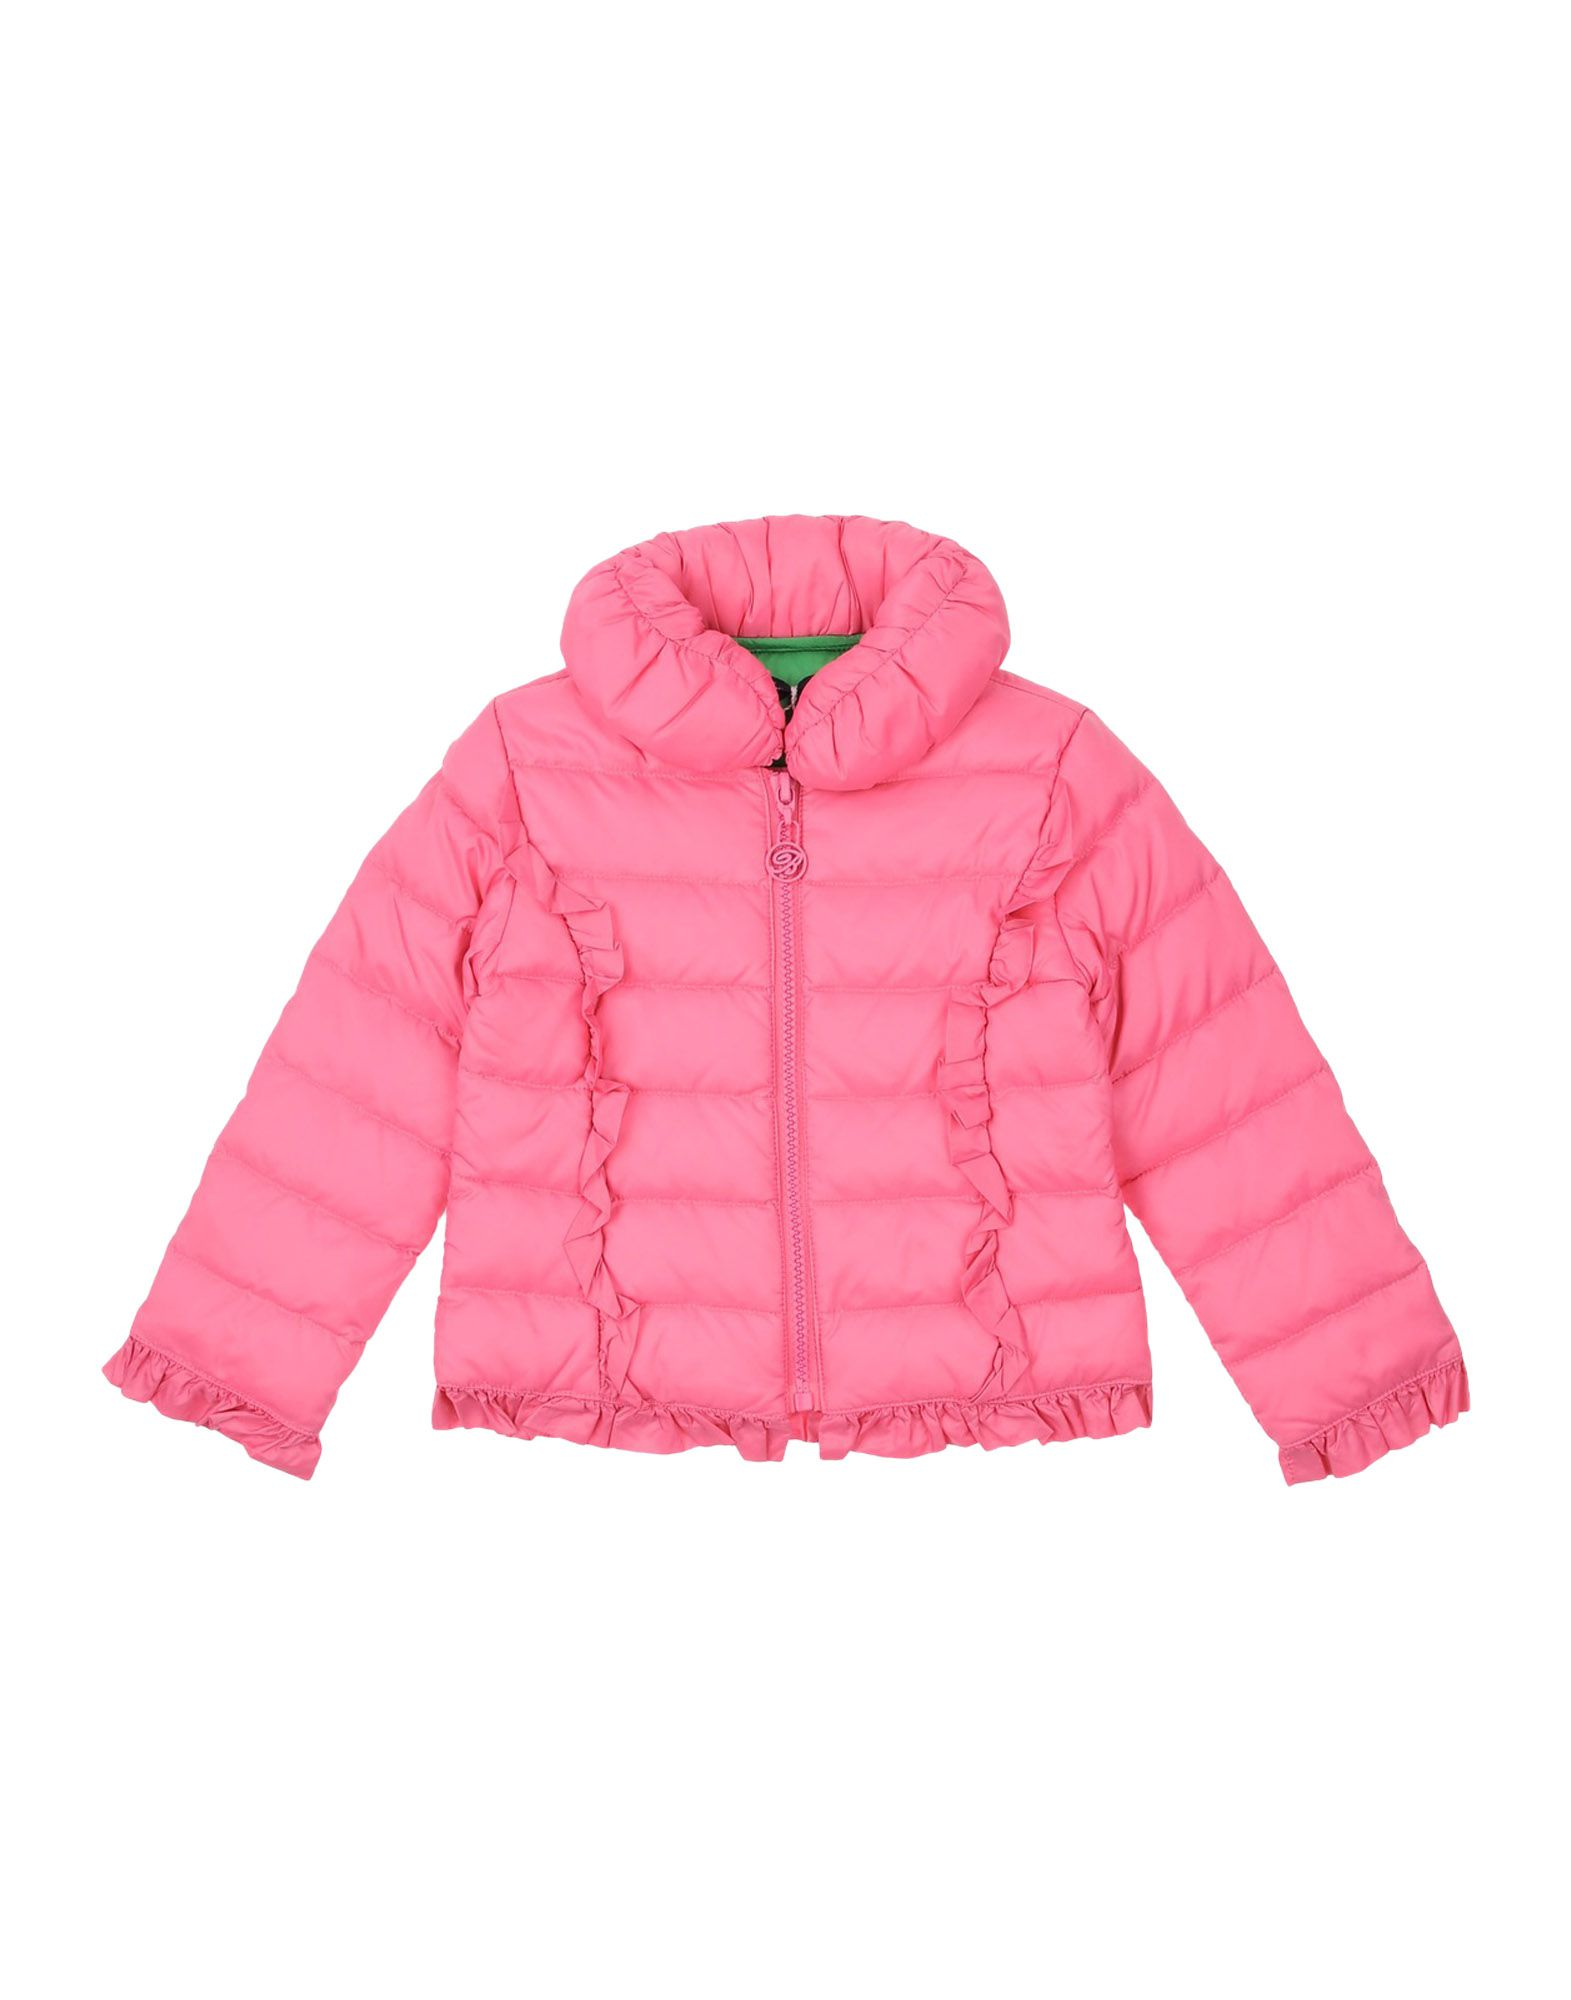 MISS BLUMARINE JEANS Synthetic Down Jackets